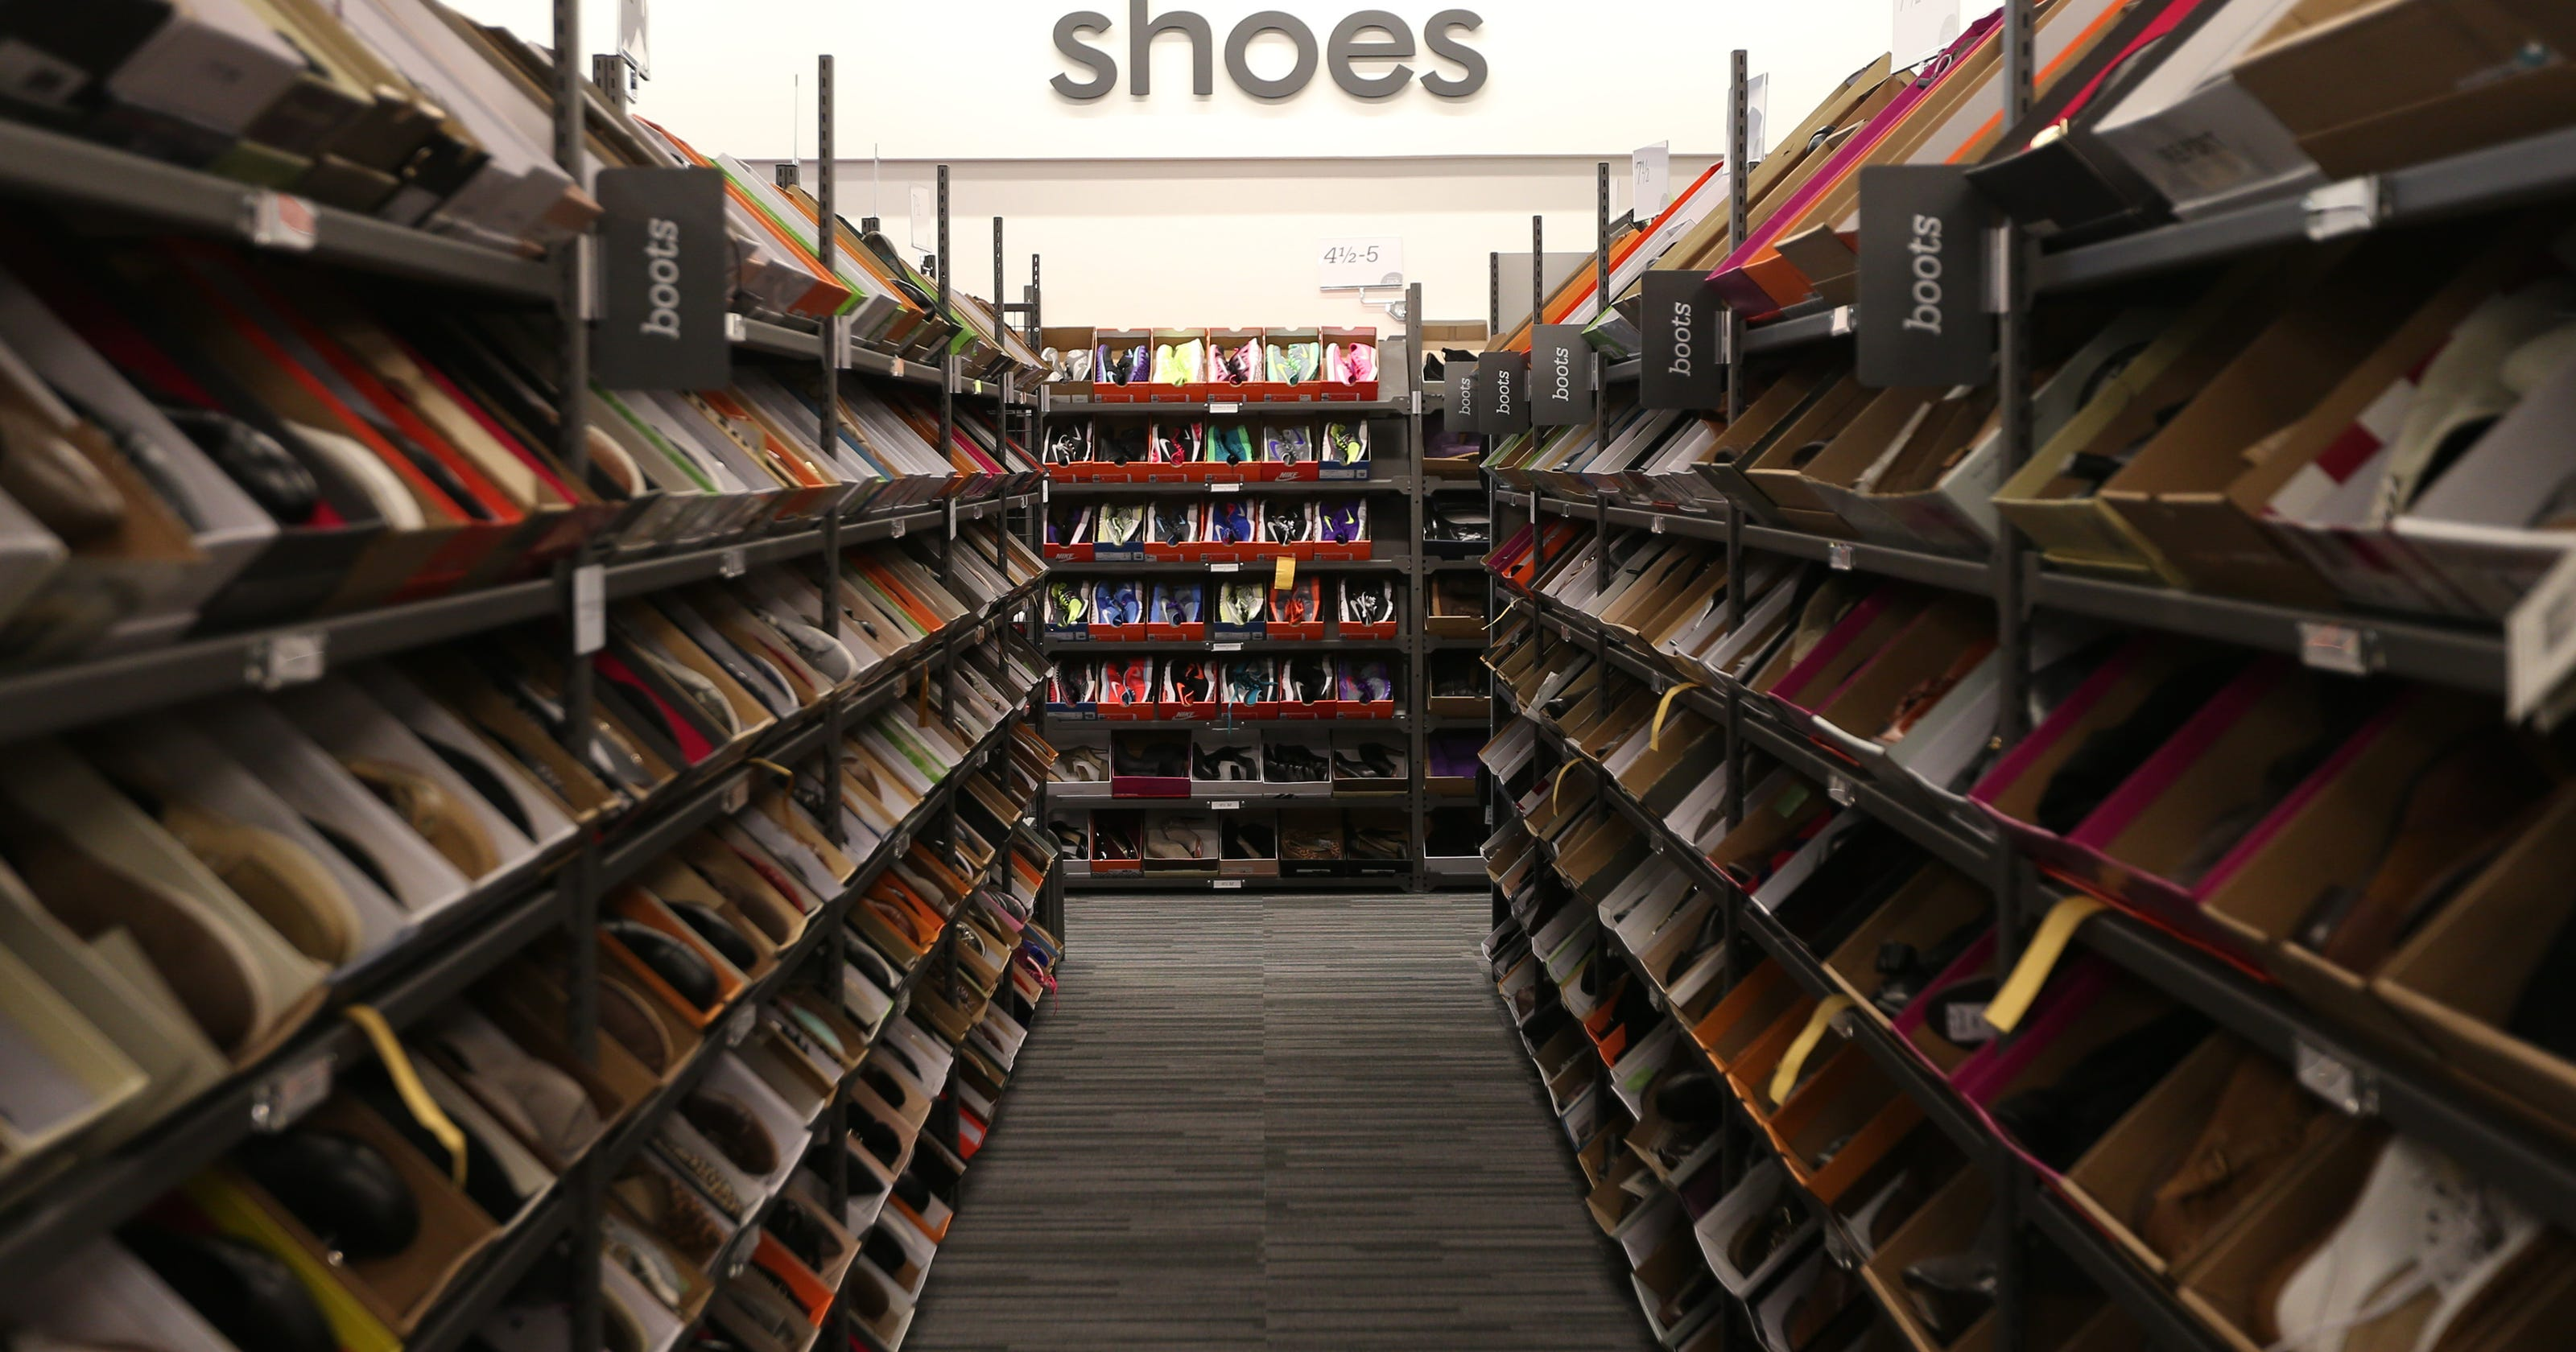 74a61cb8ea7 Nordstrom Rack opens today in West Des Moines